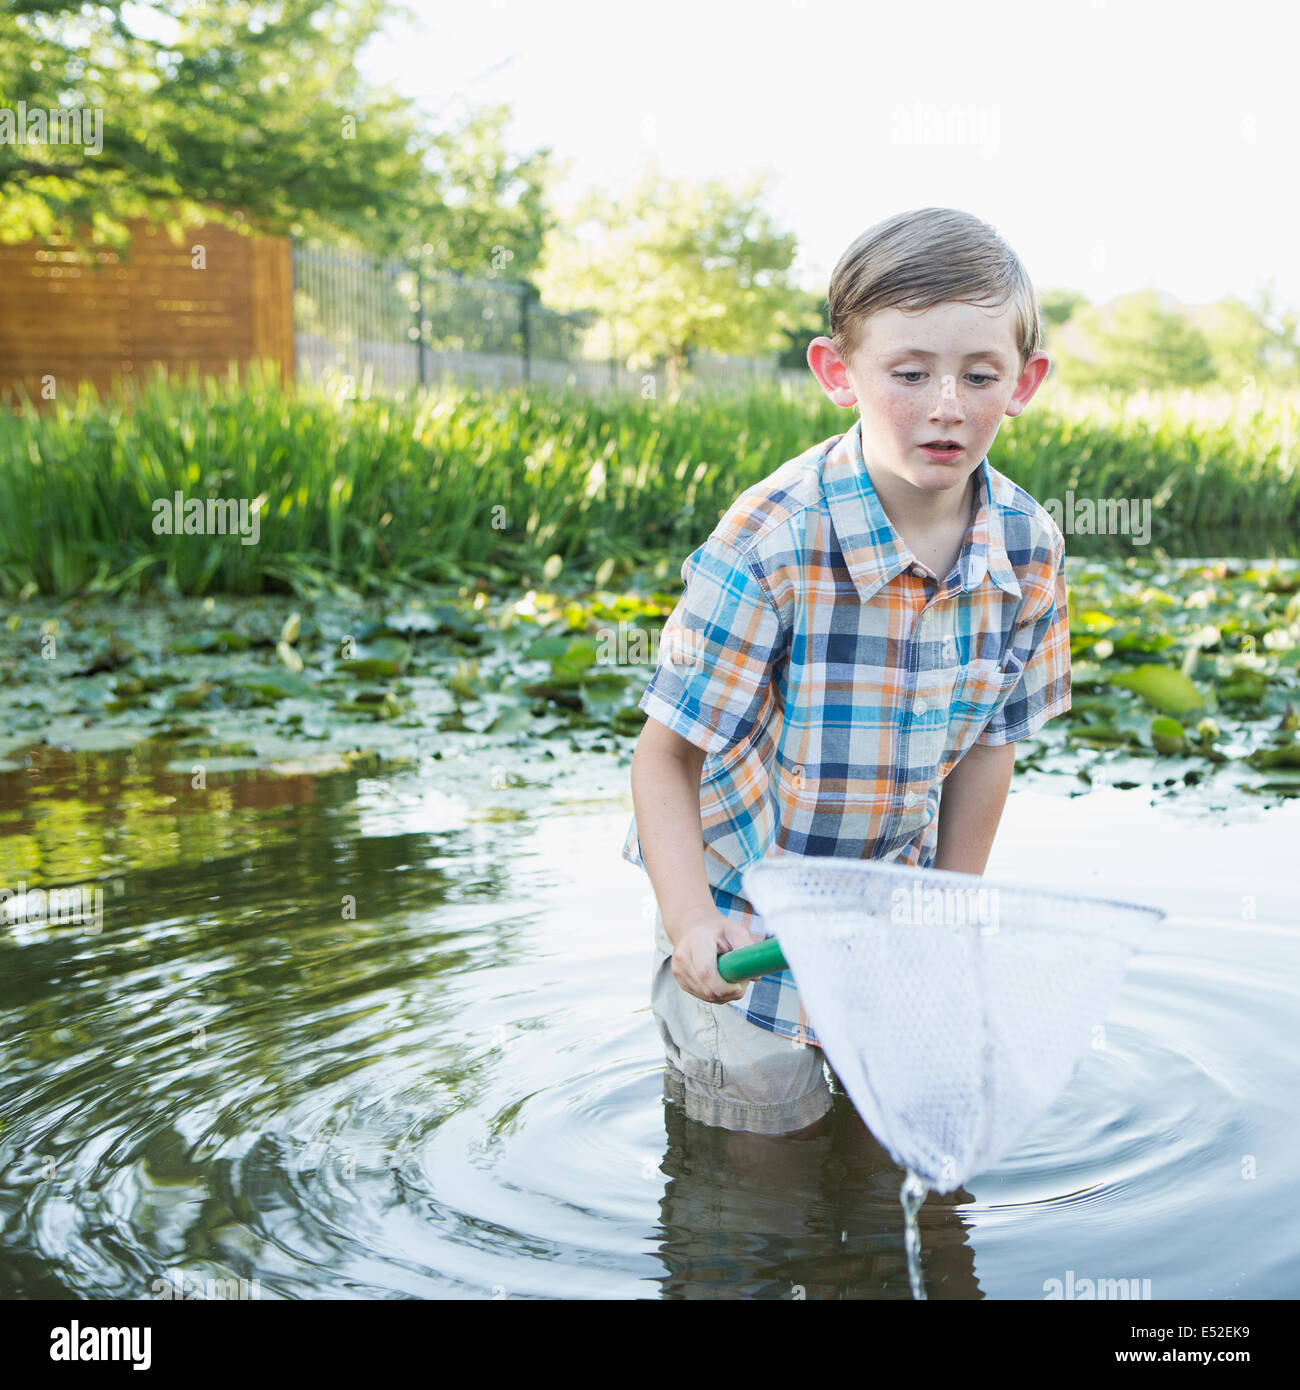 A young boy standing thigh deep in water, with a fishing net. - Stock Image